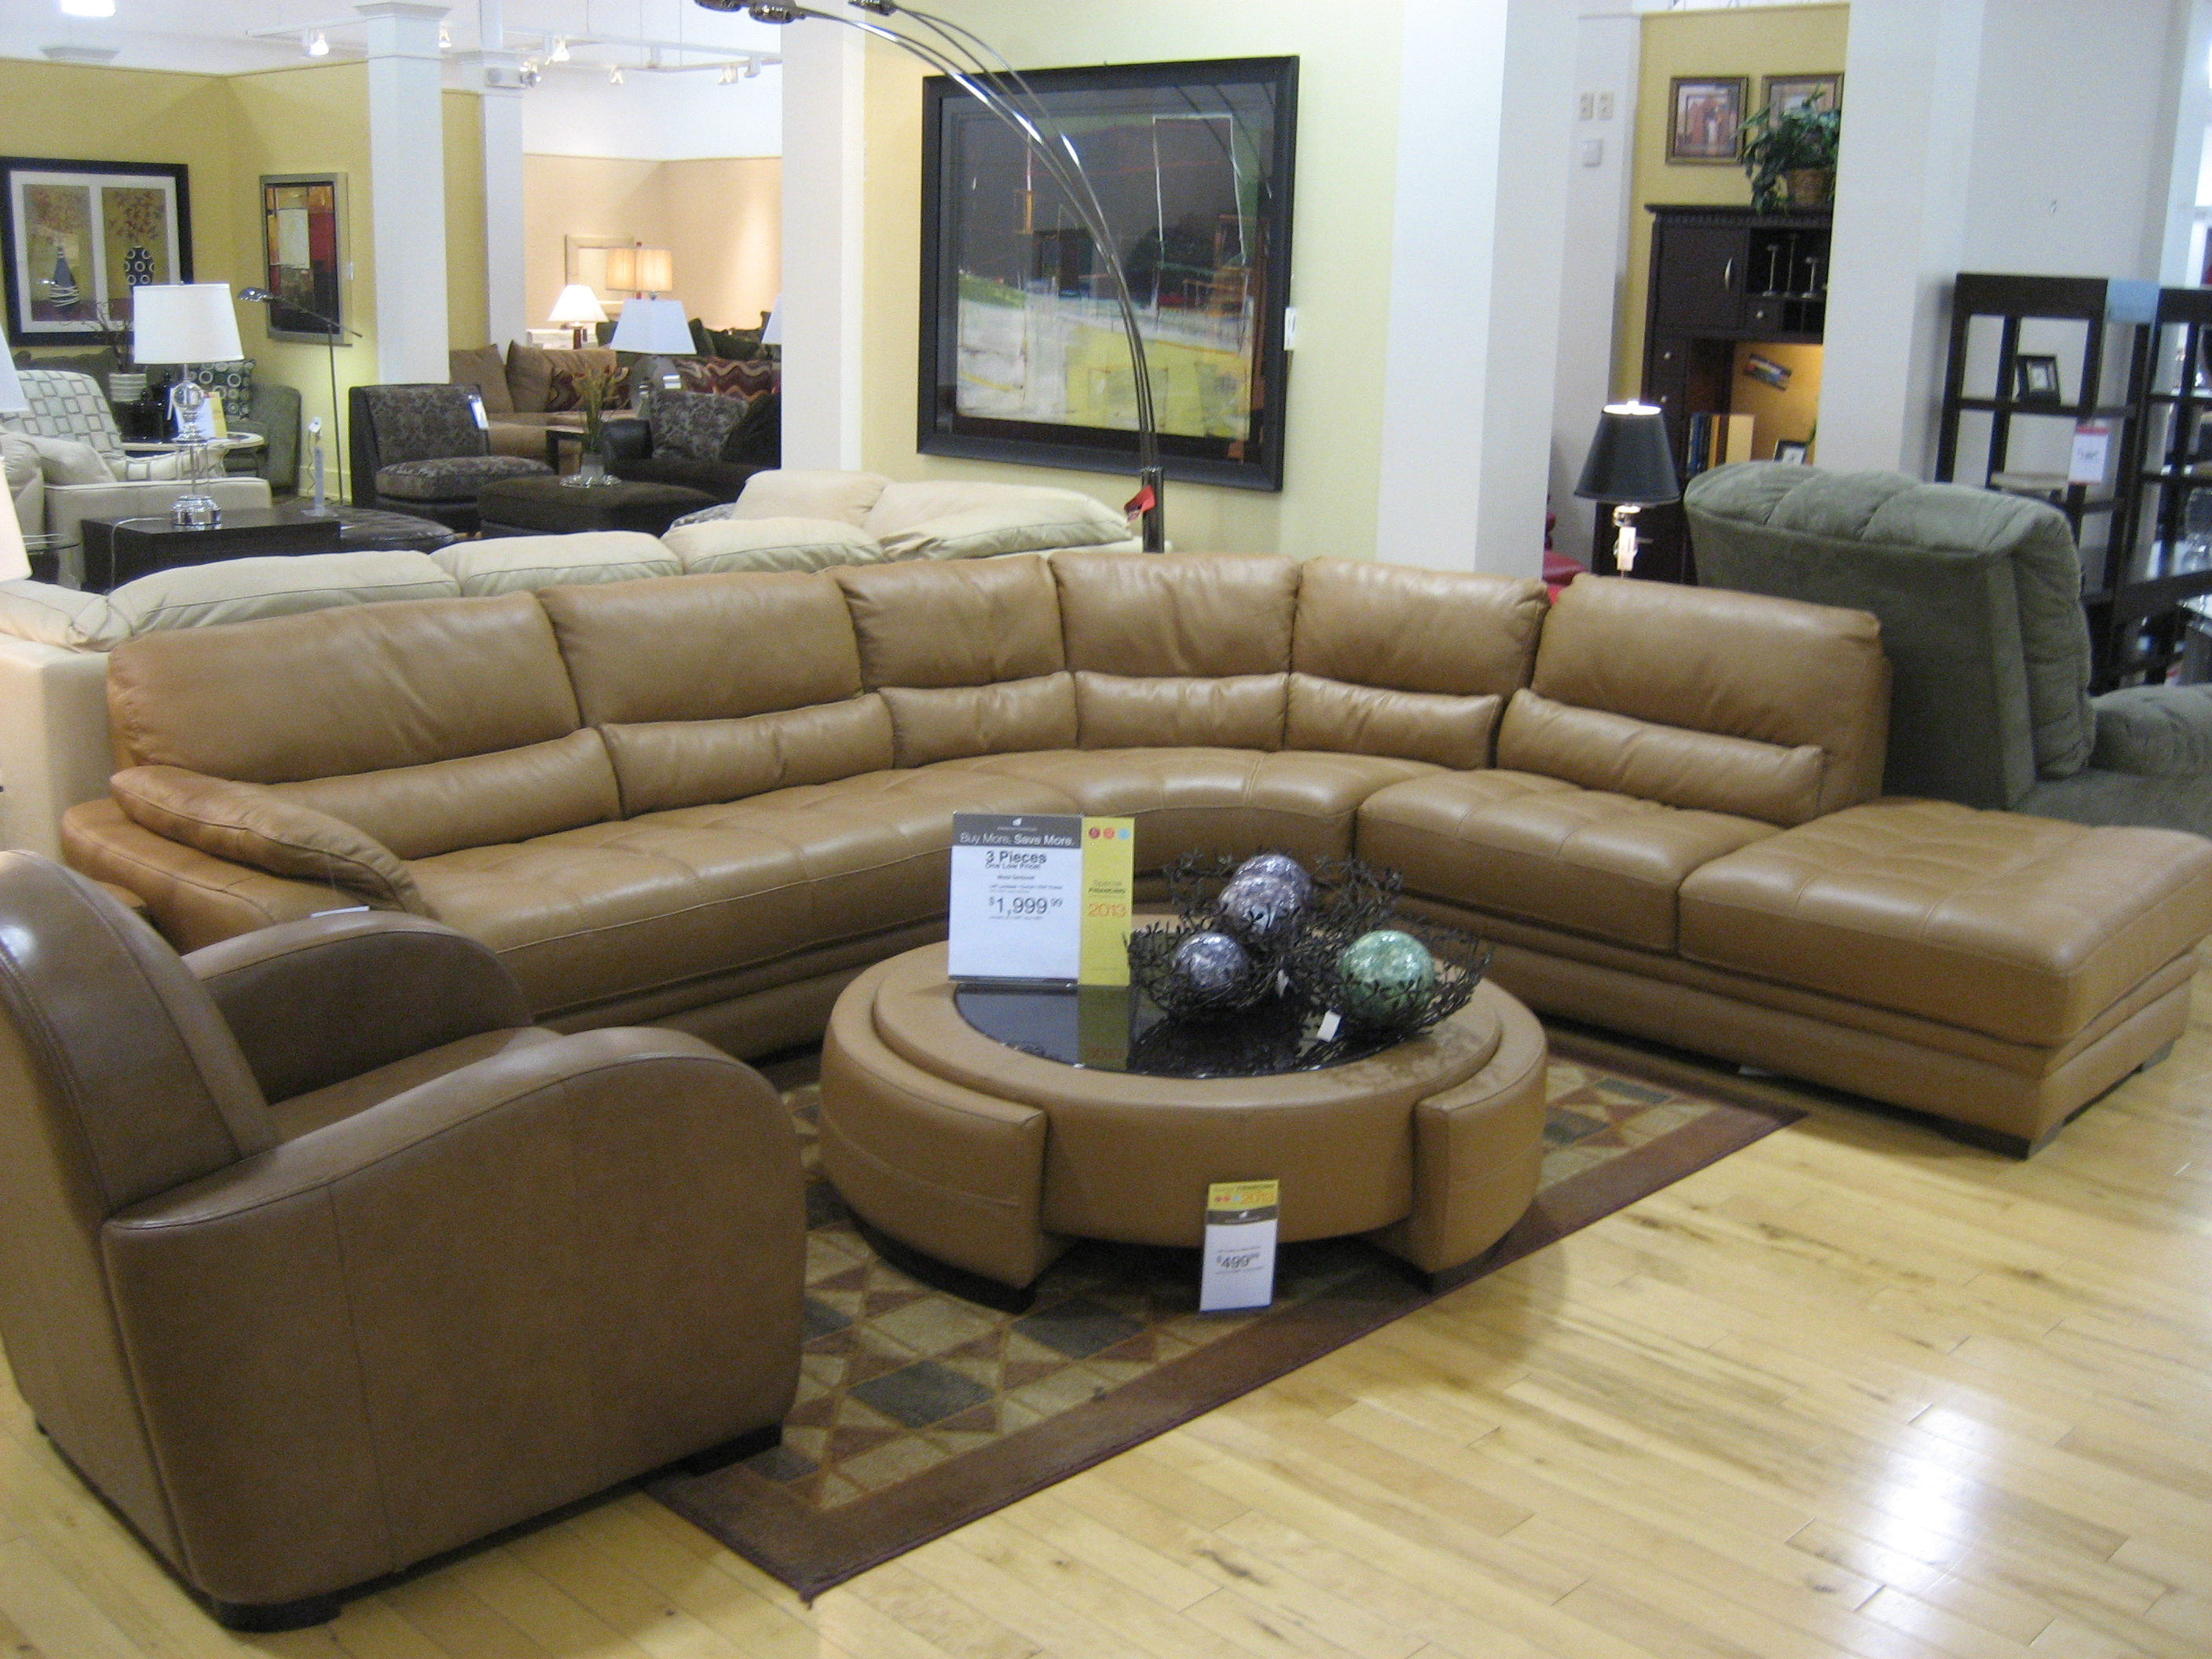 File living room couch 2284467148 jpg wikimedia commons for Living room ideas 2 couches